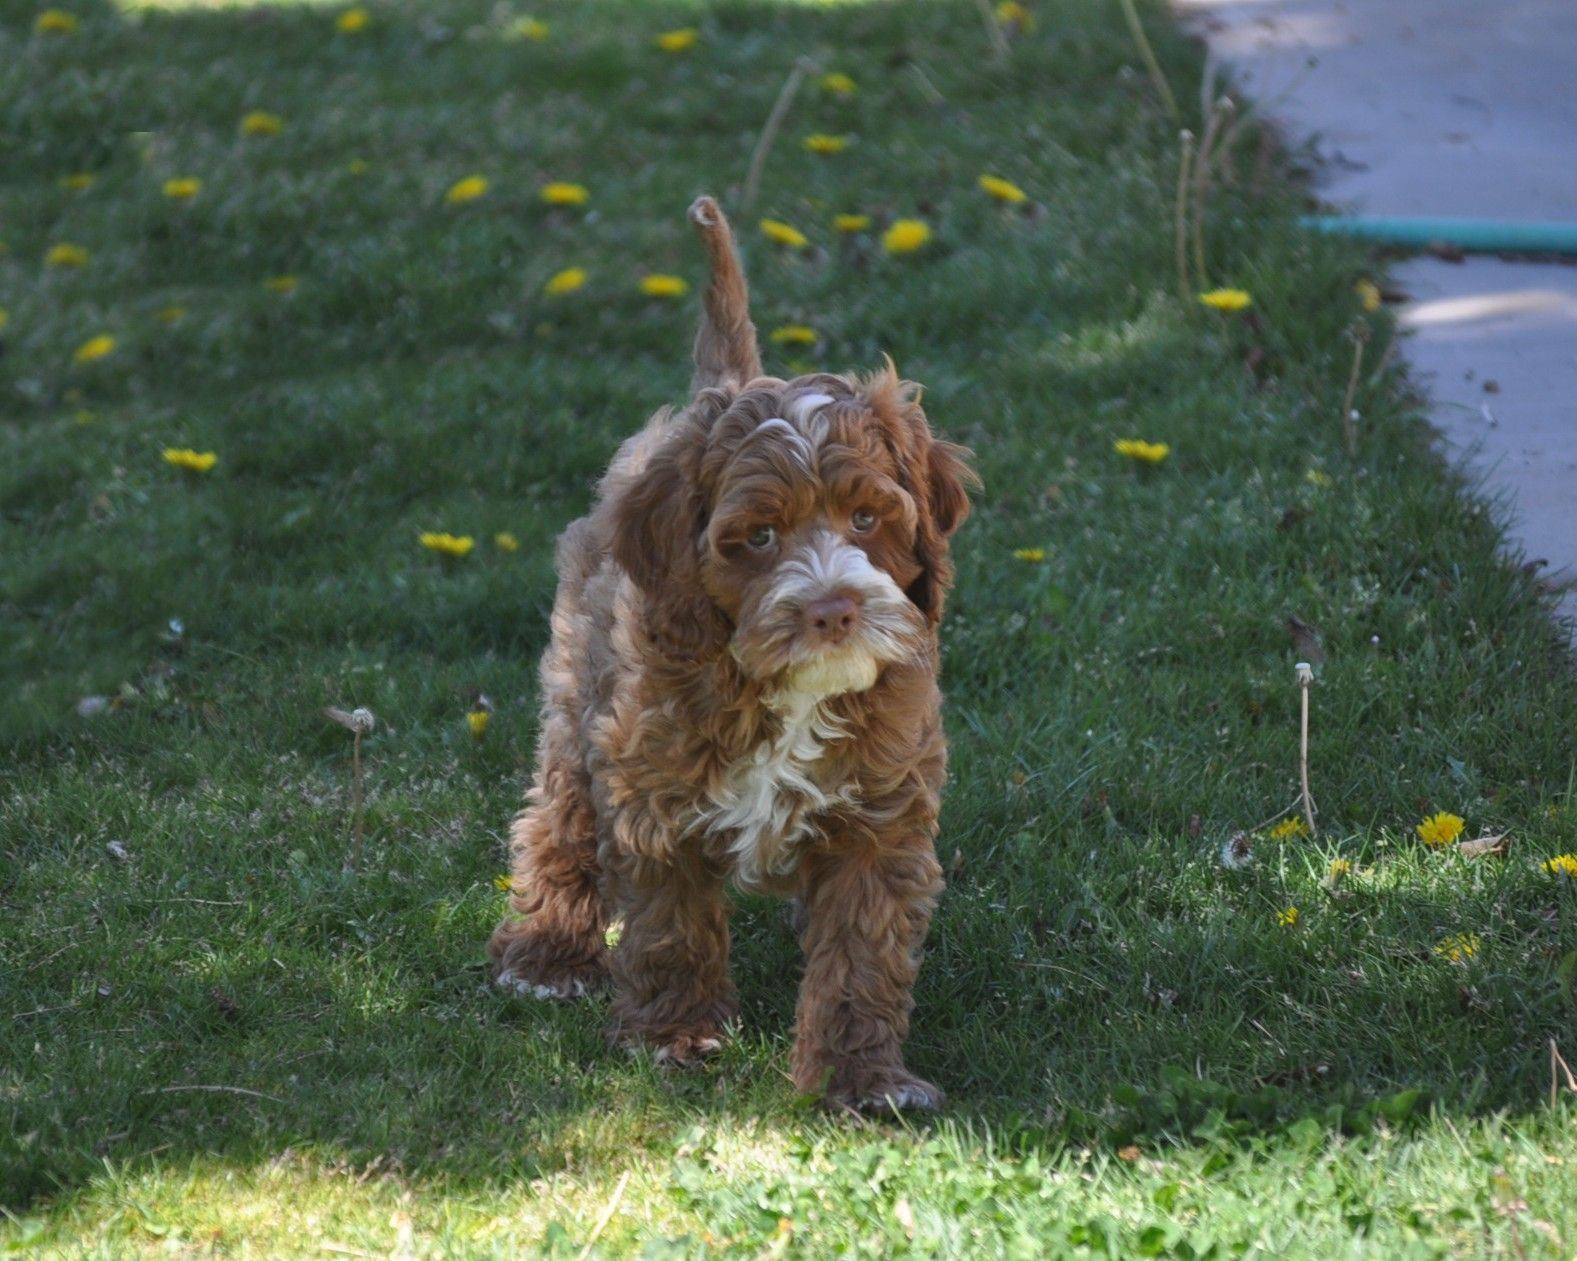 Cockapoo Puppies for sale in Southern California. We are a